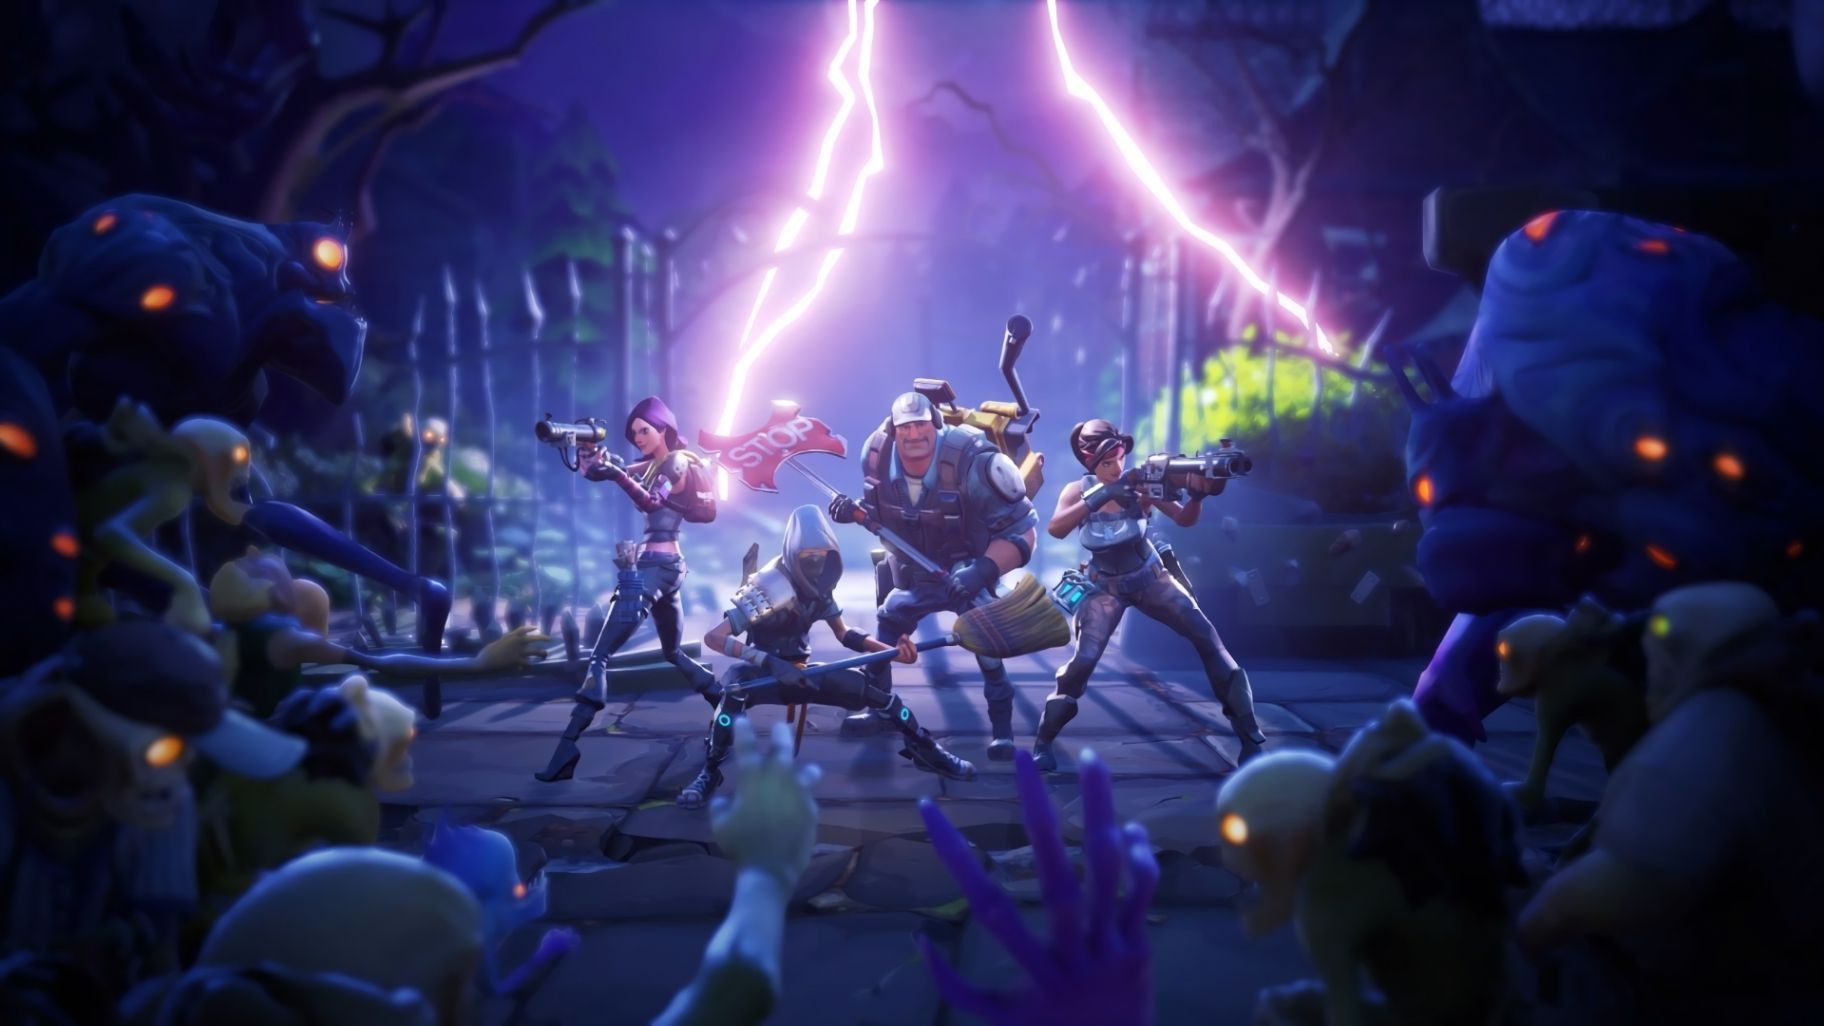 Fortnite Save The World Wallpapers Top Free Fortnite Save The